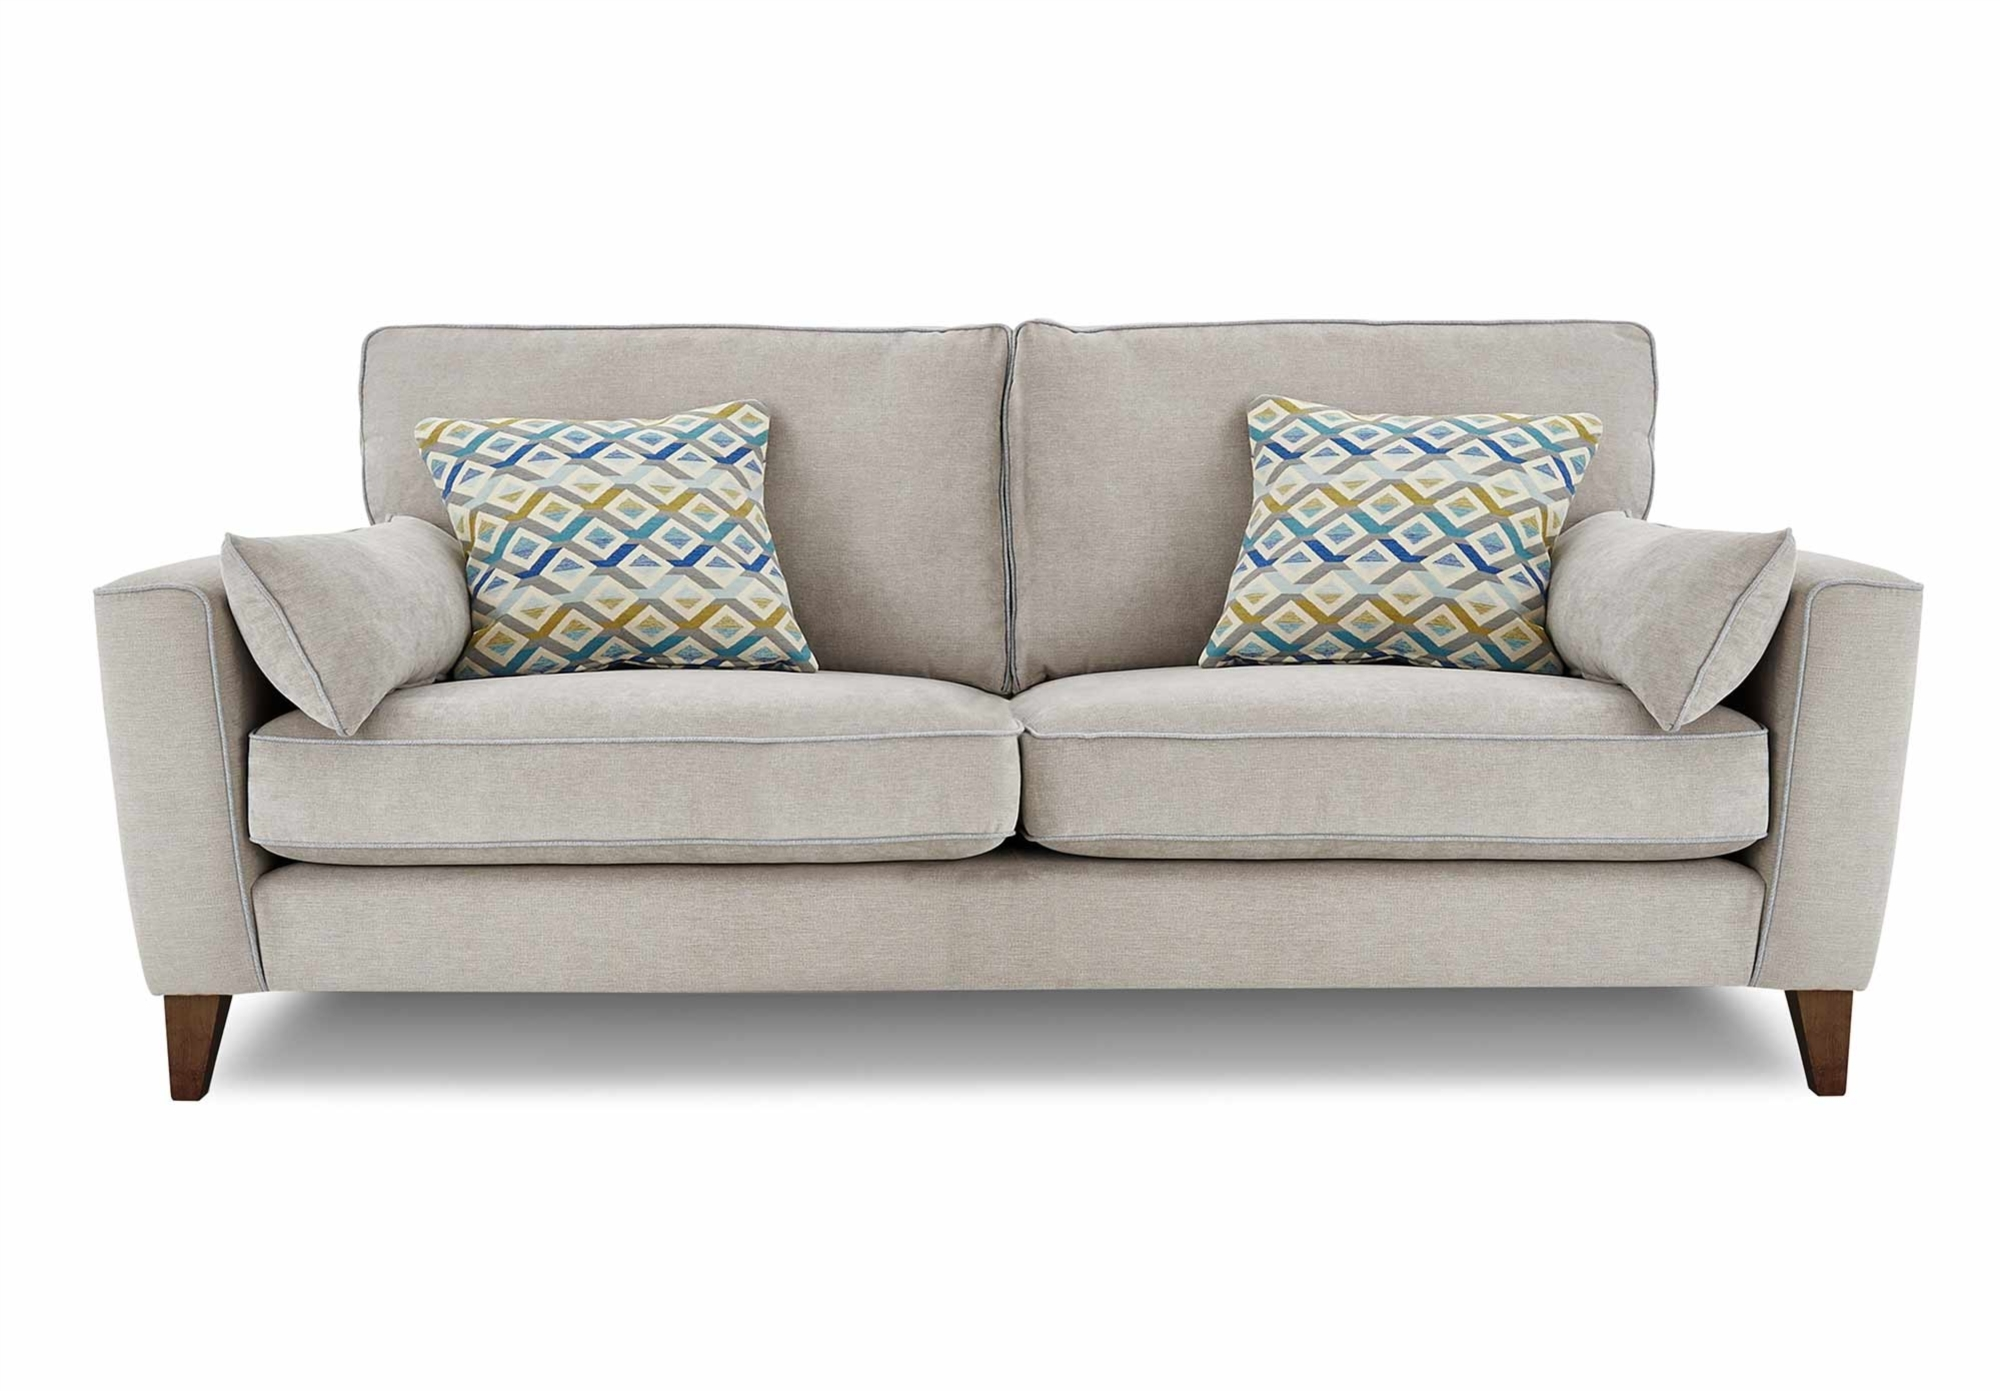 Four Seat Sofa Hereo Sofa Regarding 4 Seater Couch (Image 7 of 15)